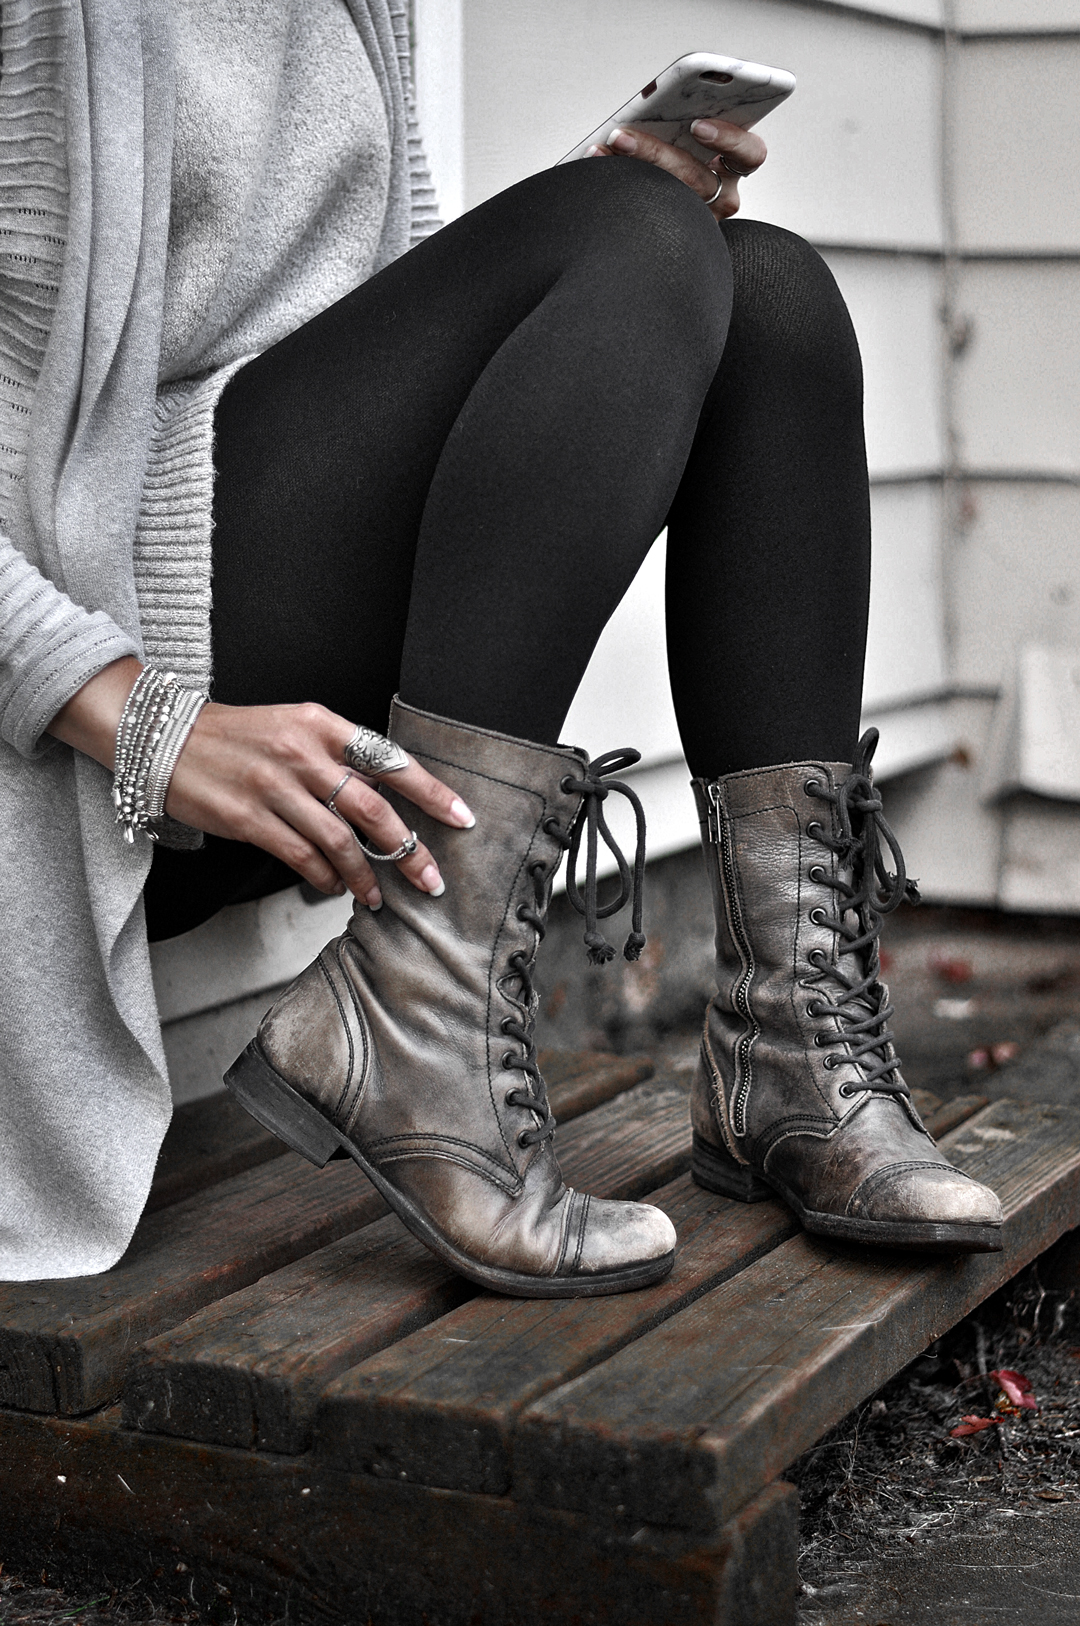 Check out these tights outfits for Fall. They are SO cute and a great transitional piece for your wardrobe. Berkshire has the hosiery for every occasion!